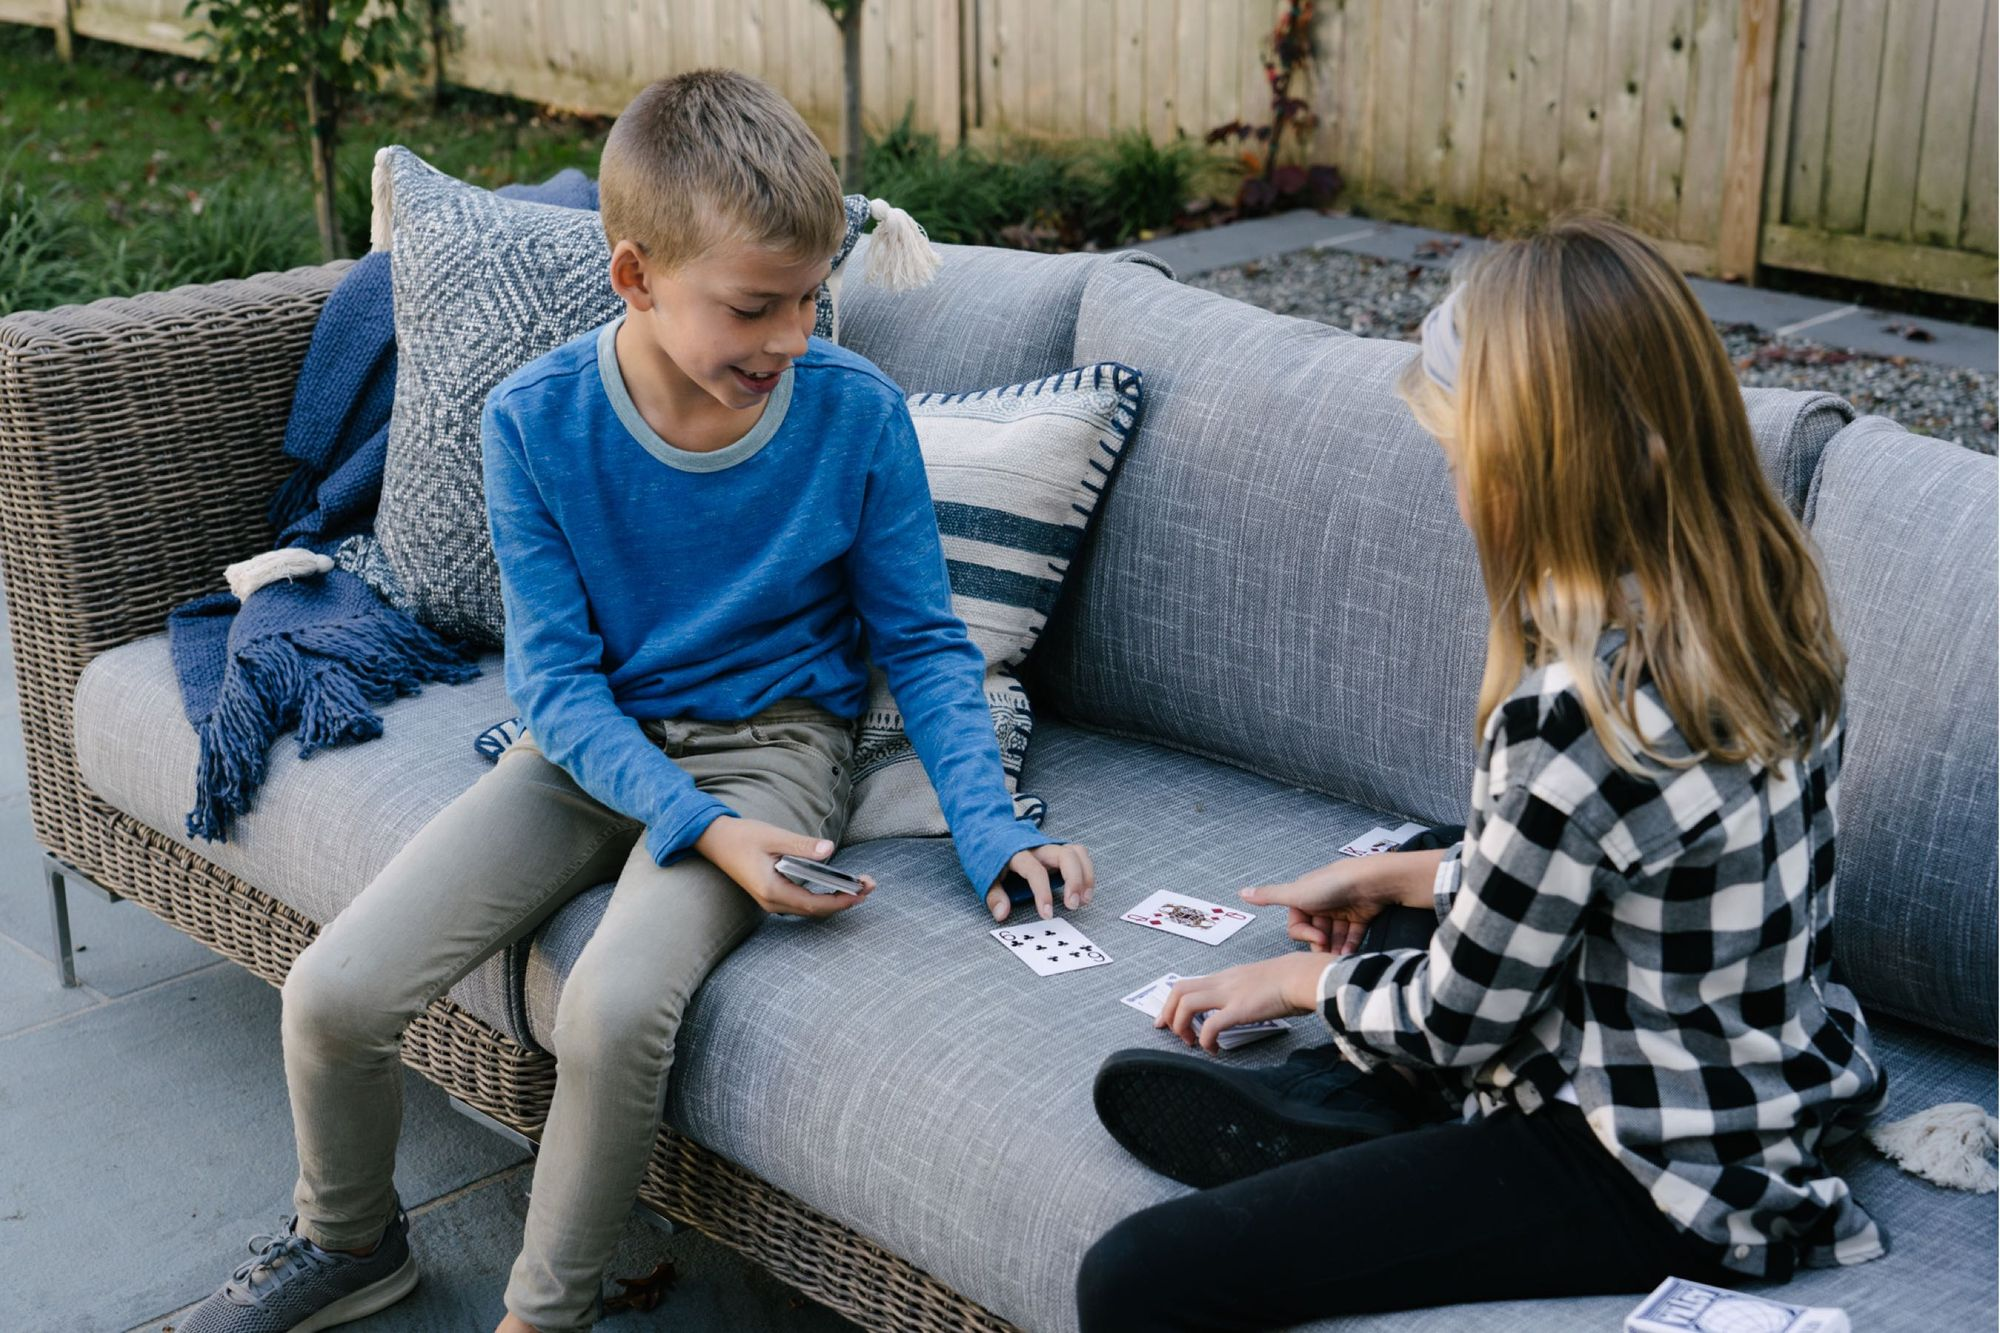 Two kids playing cards on outdoor furniture